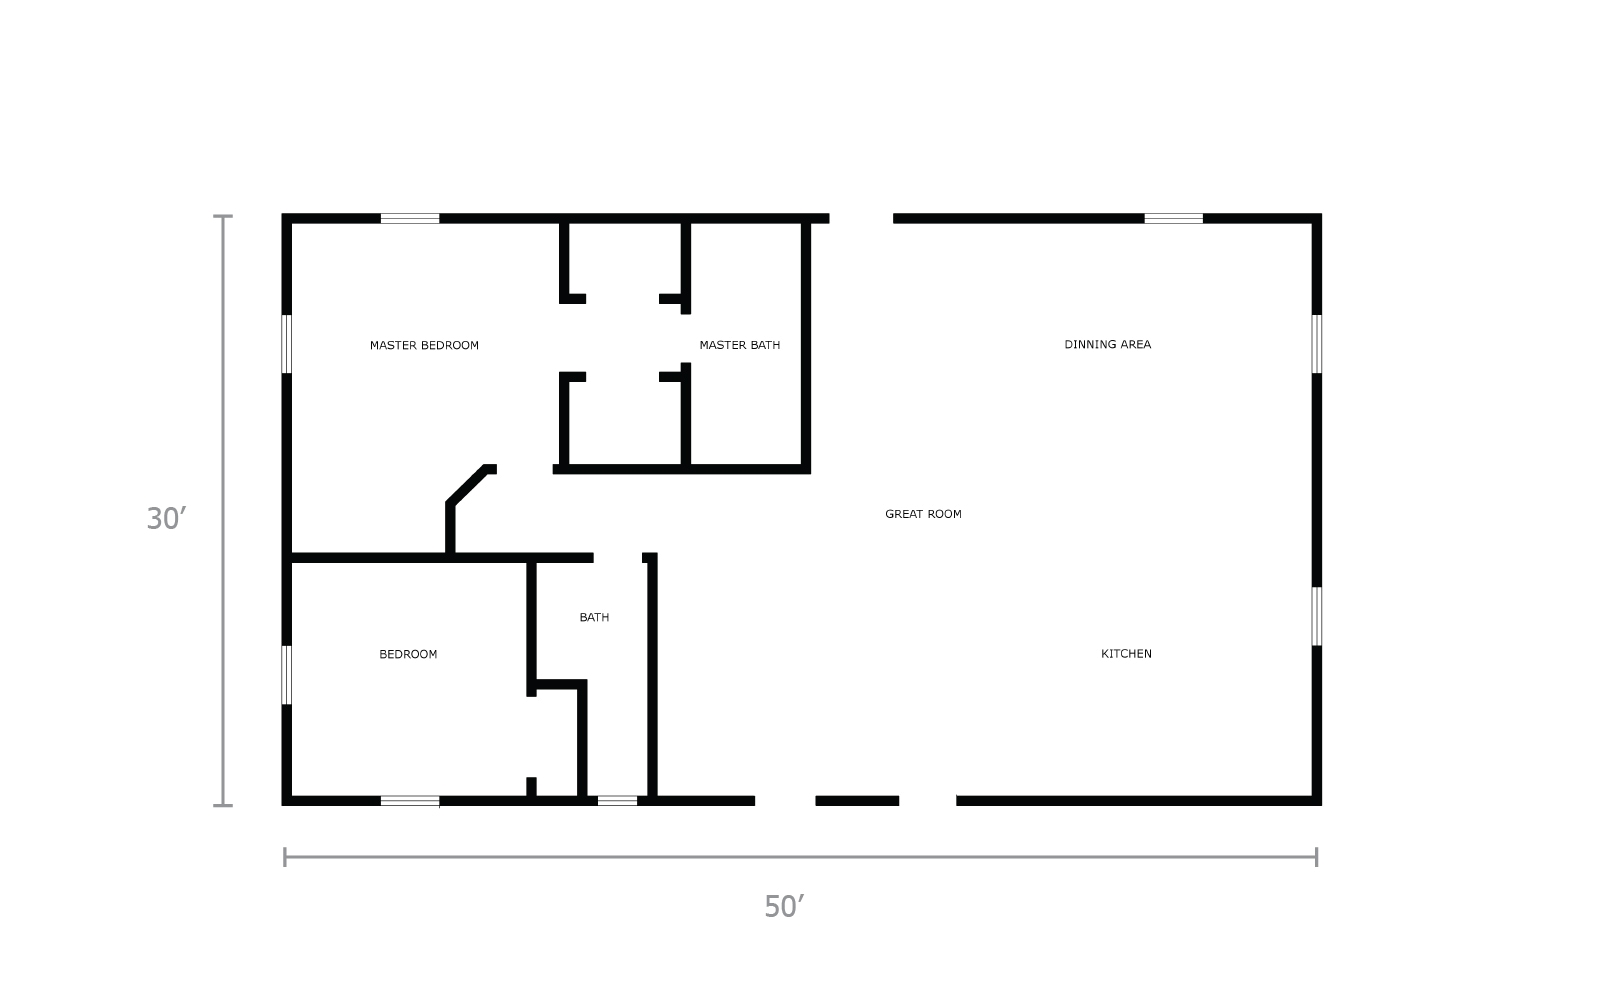 hight resolution of cost to build a 30x50 home